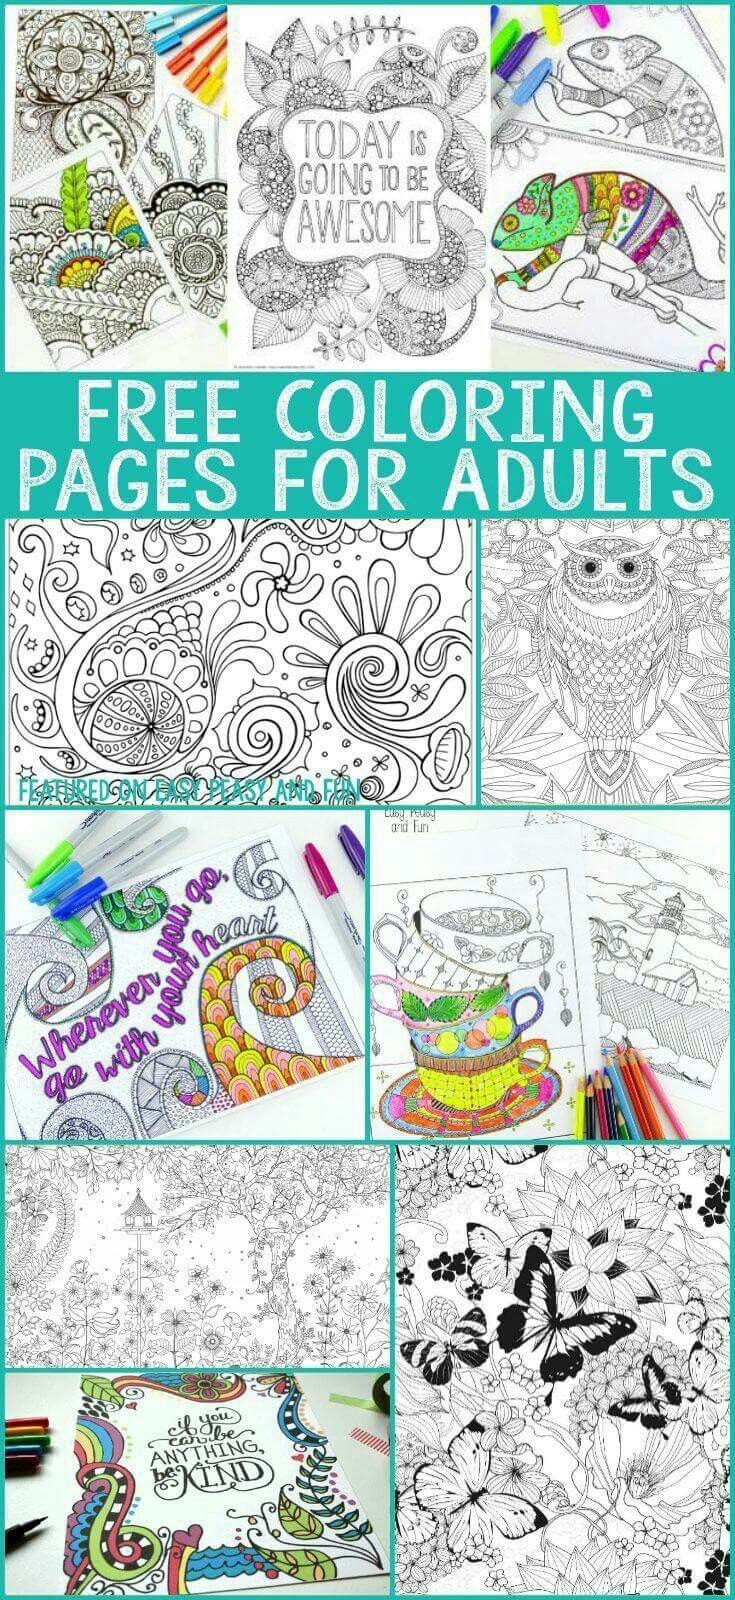 Adult coloring book the inspired room interior design coloring book - Free Coloring Pages For Adults Easypeasyandfun